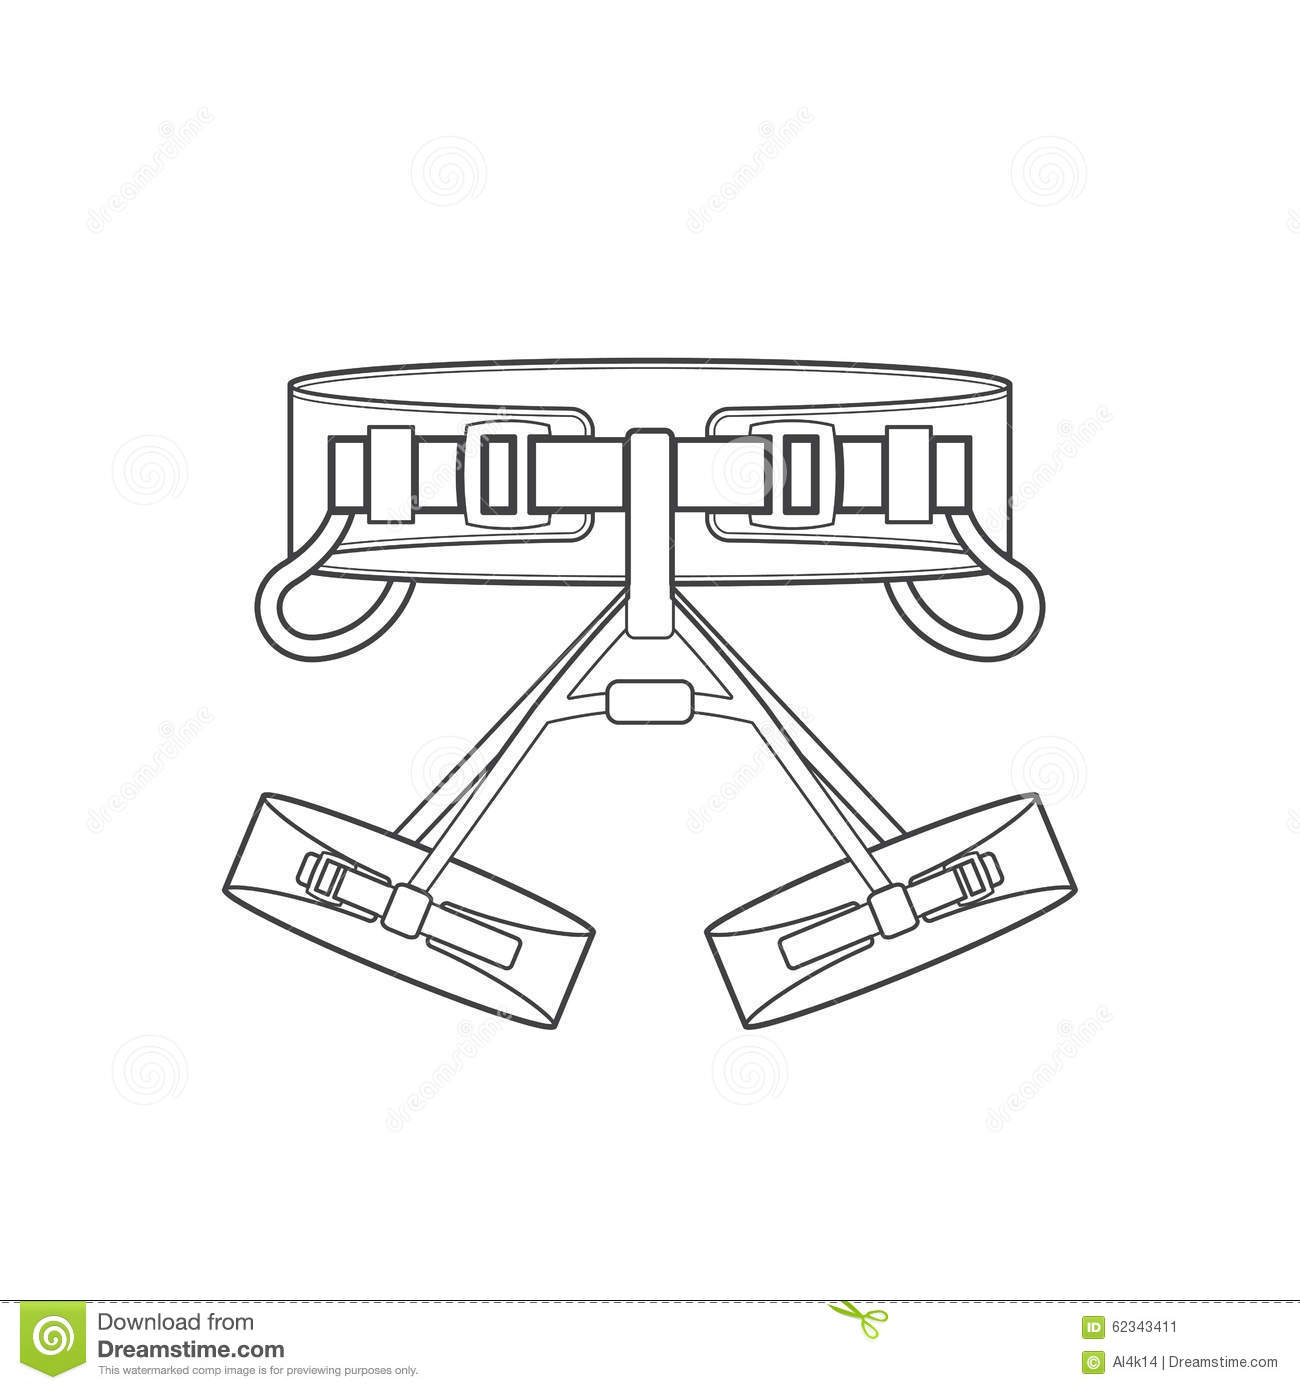 Outline Alpinism Equipment Harness Icon Illustration Stock